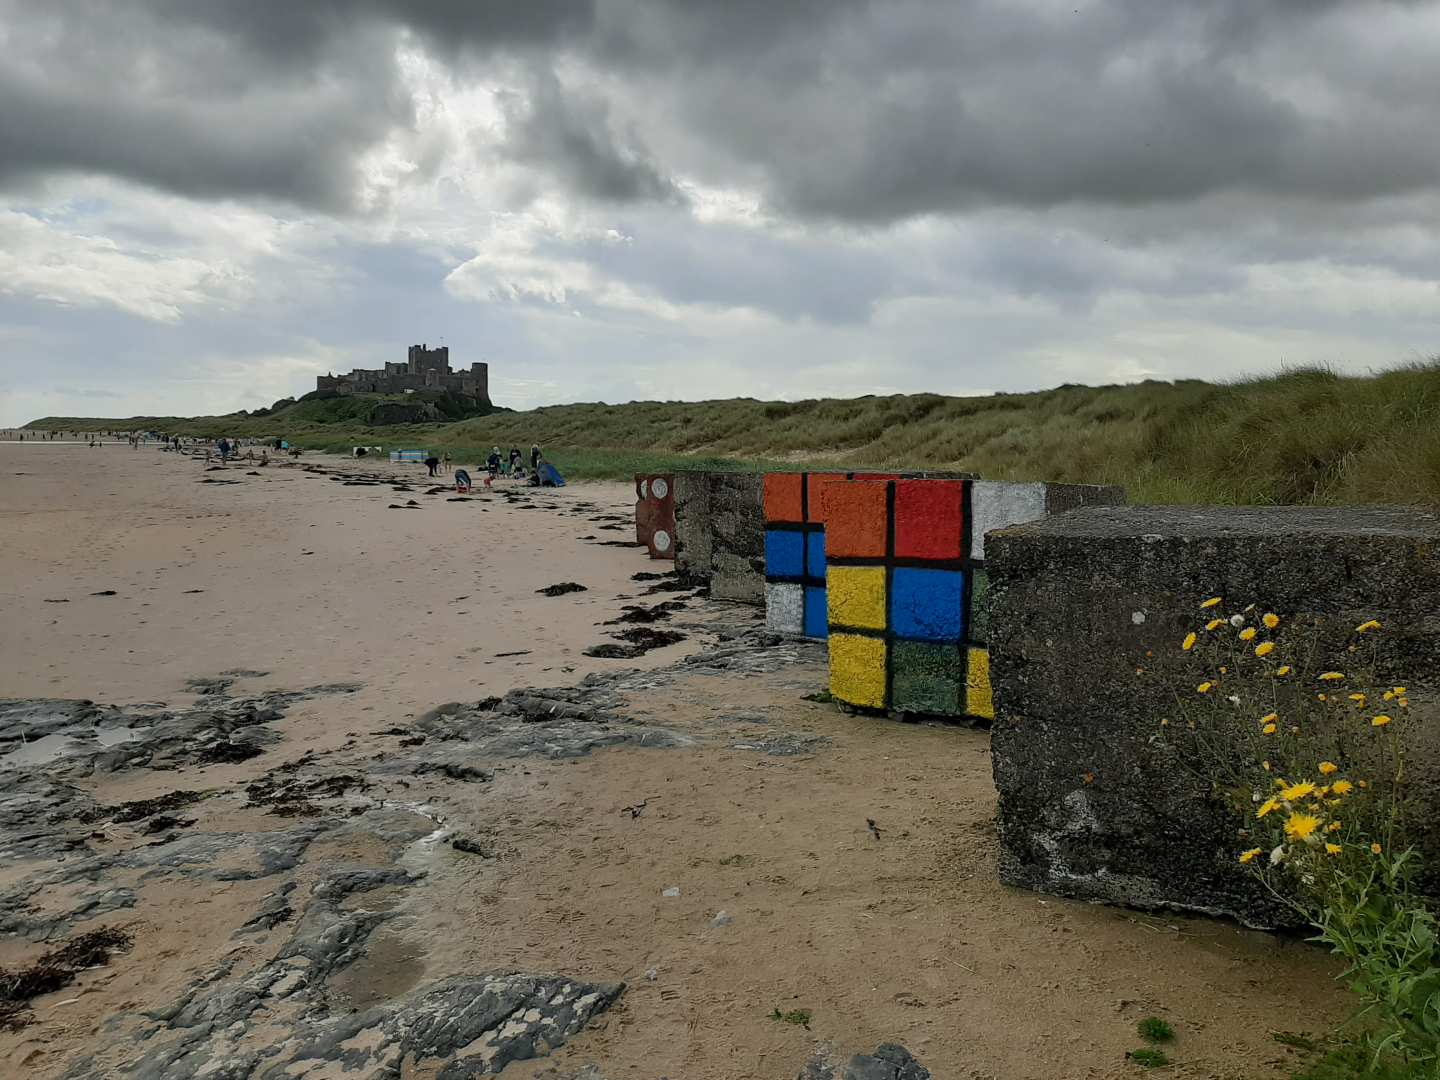 """Approaching Bamburgh Castle"" by Elizabeth Hurrell (2020)"